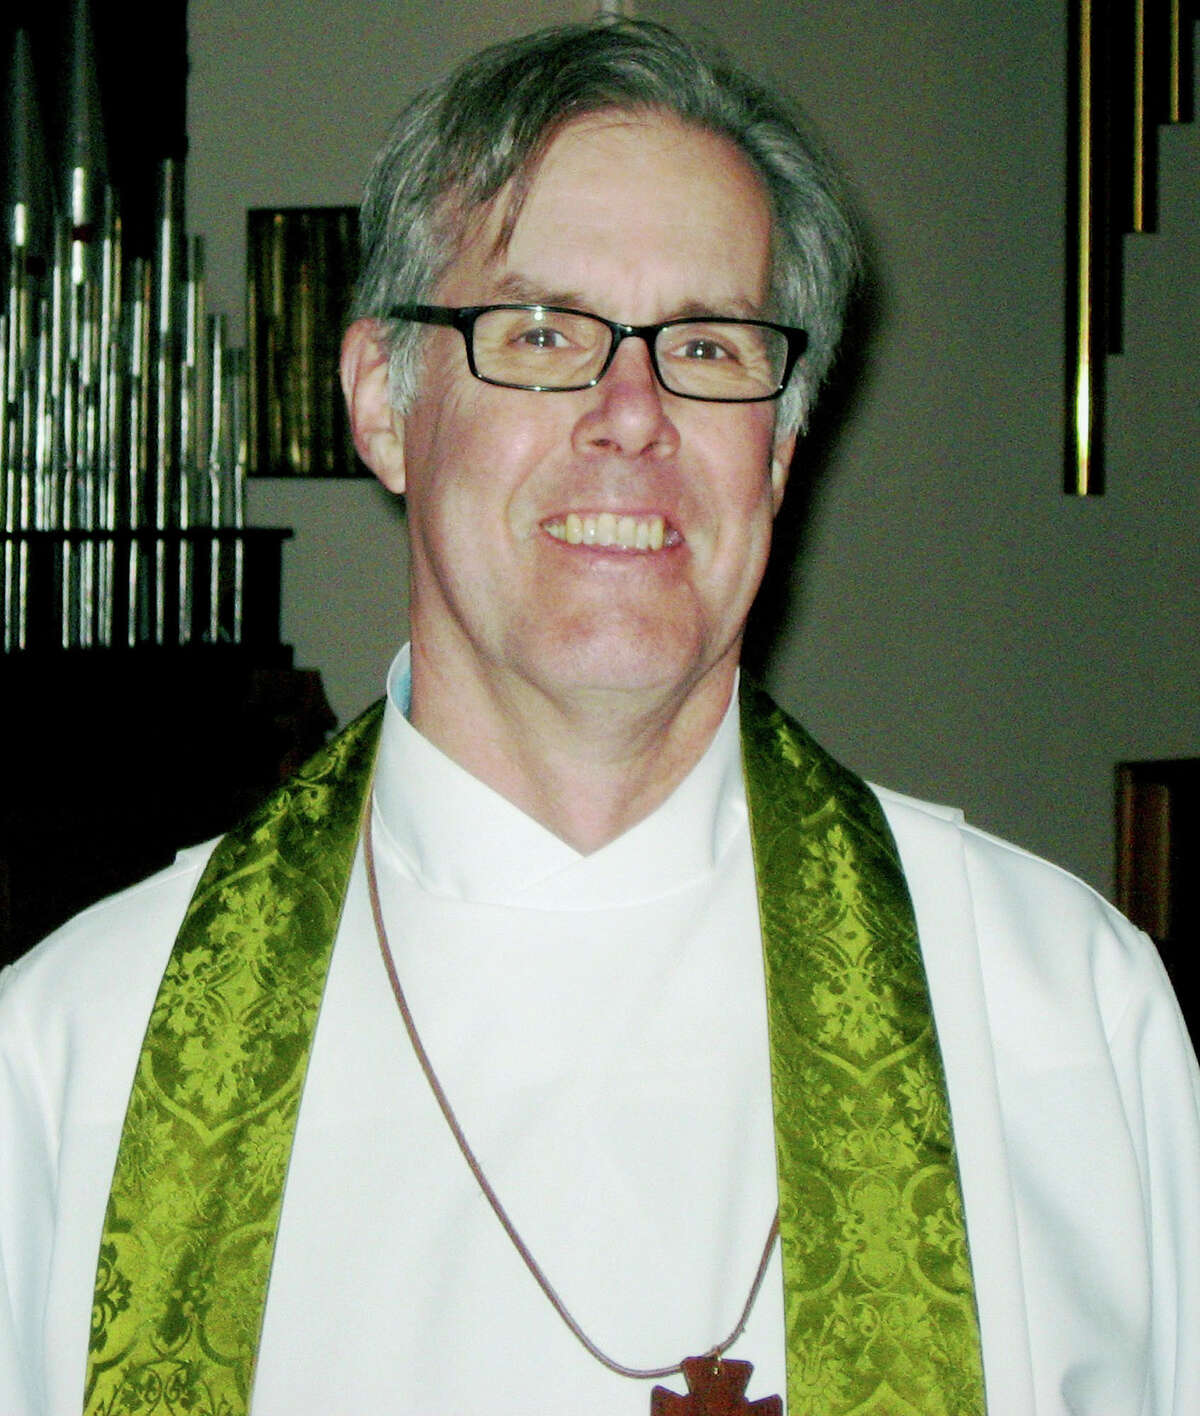 The Rev. Jack Gilpin, a Roxbury resident, will be ordained Dec. 15, 2012 as the priest for St. John's Episcopal Church in New Milford.